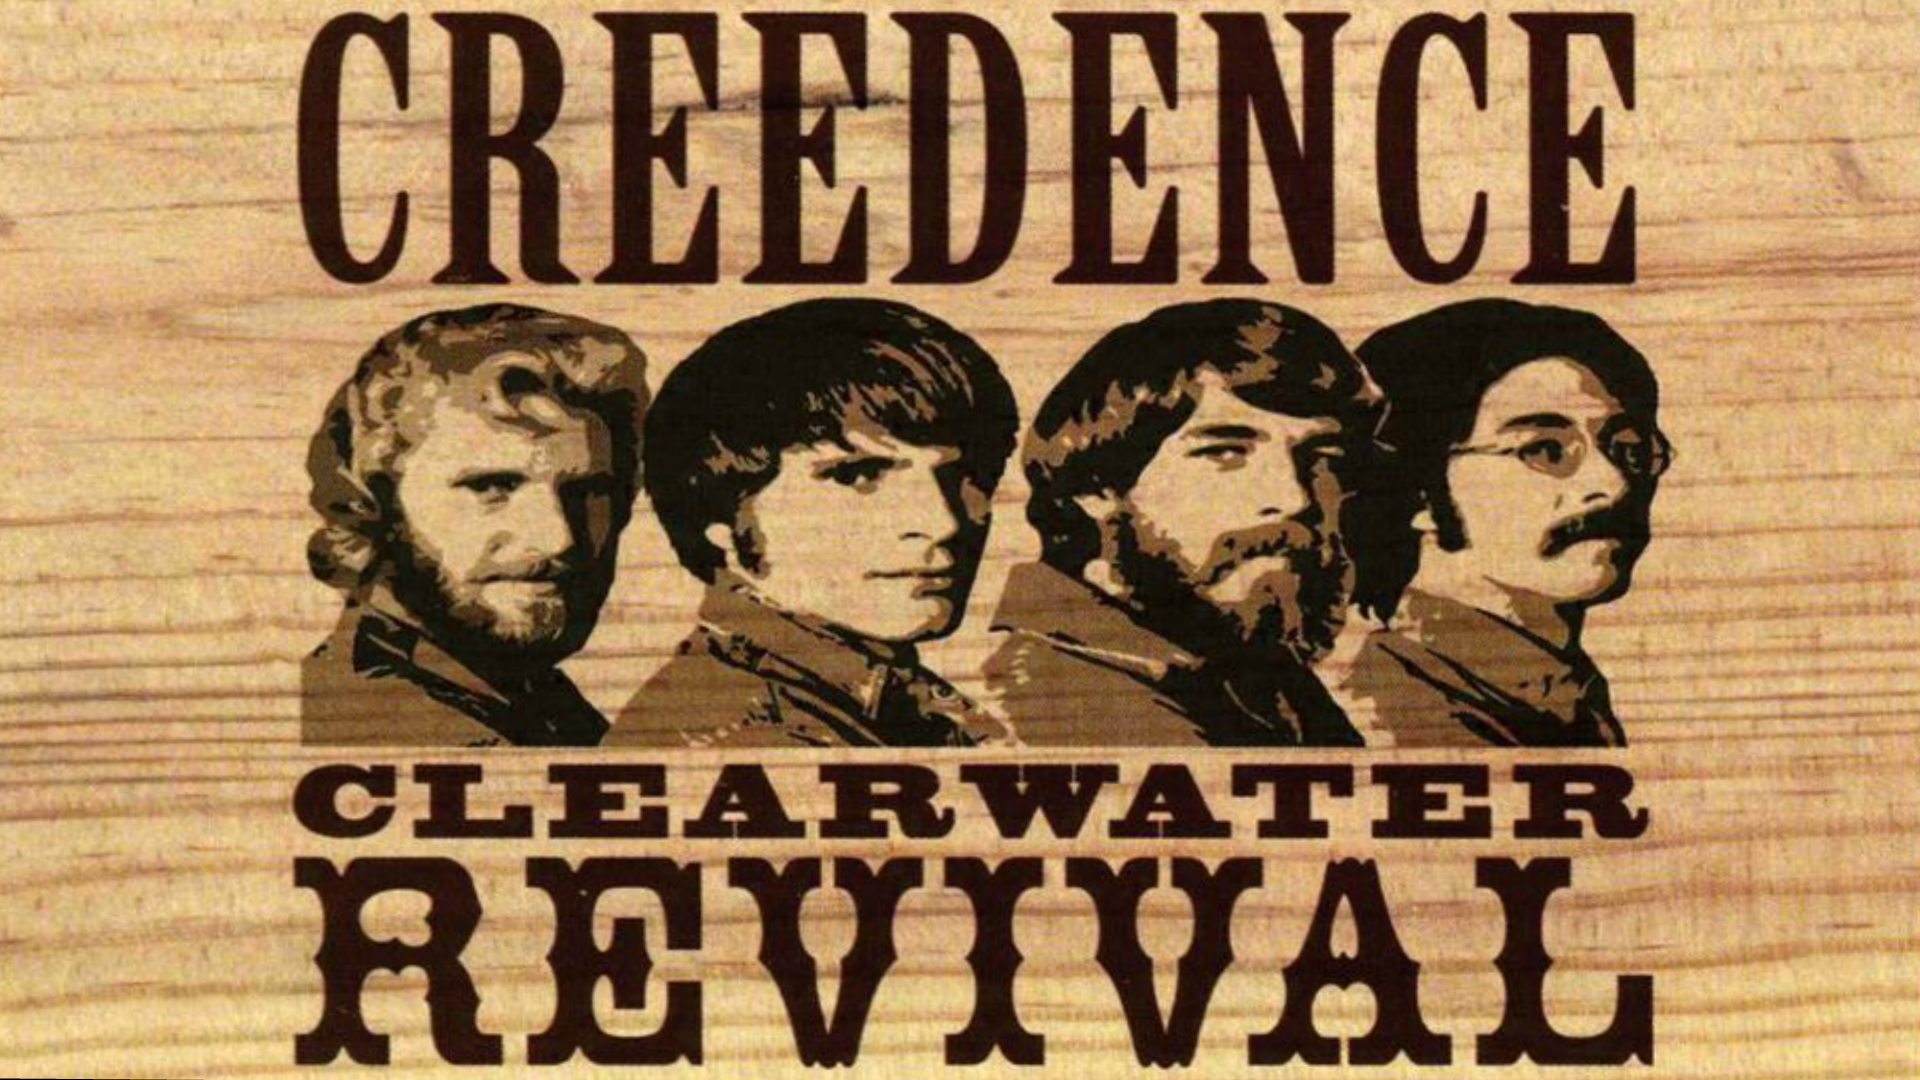 Credence Photo 10 Creedence Clearwater Revival Hd Wallpapers Background